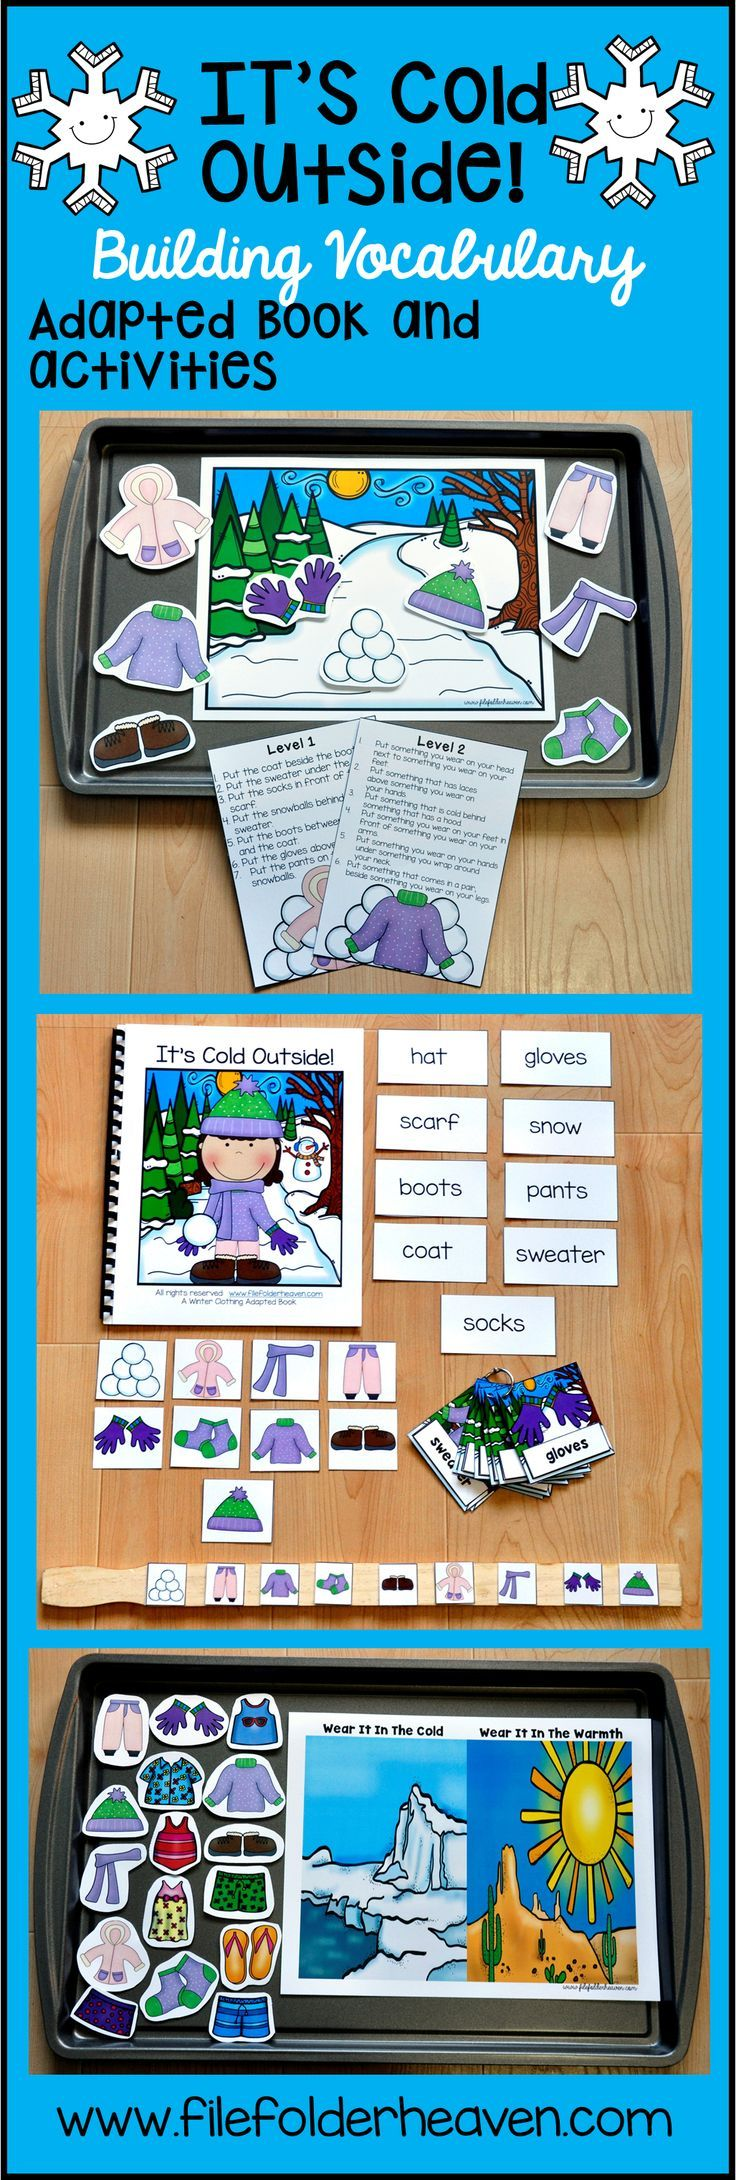 """This Winter Adapted Book and Vocabulary Activities has now been UPDATED! The """"It's Cold Outside"""" Adapted Book and Vocabulary Activities focuses on winter clothing vocabulary words. This download includes 1 adapted book, 1 sequencing stick activity, 1 sorting/classification activity, 1 positional concepts activity, and 1 set of vocabulary labeling cards."""